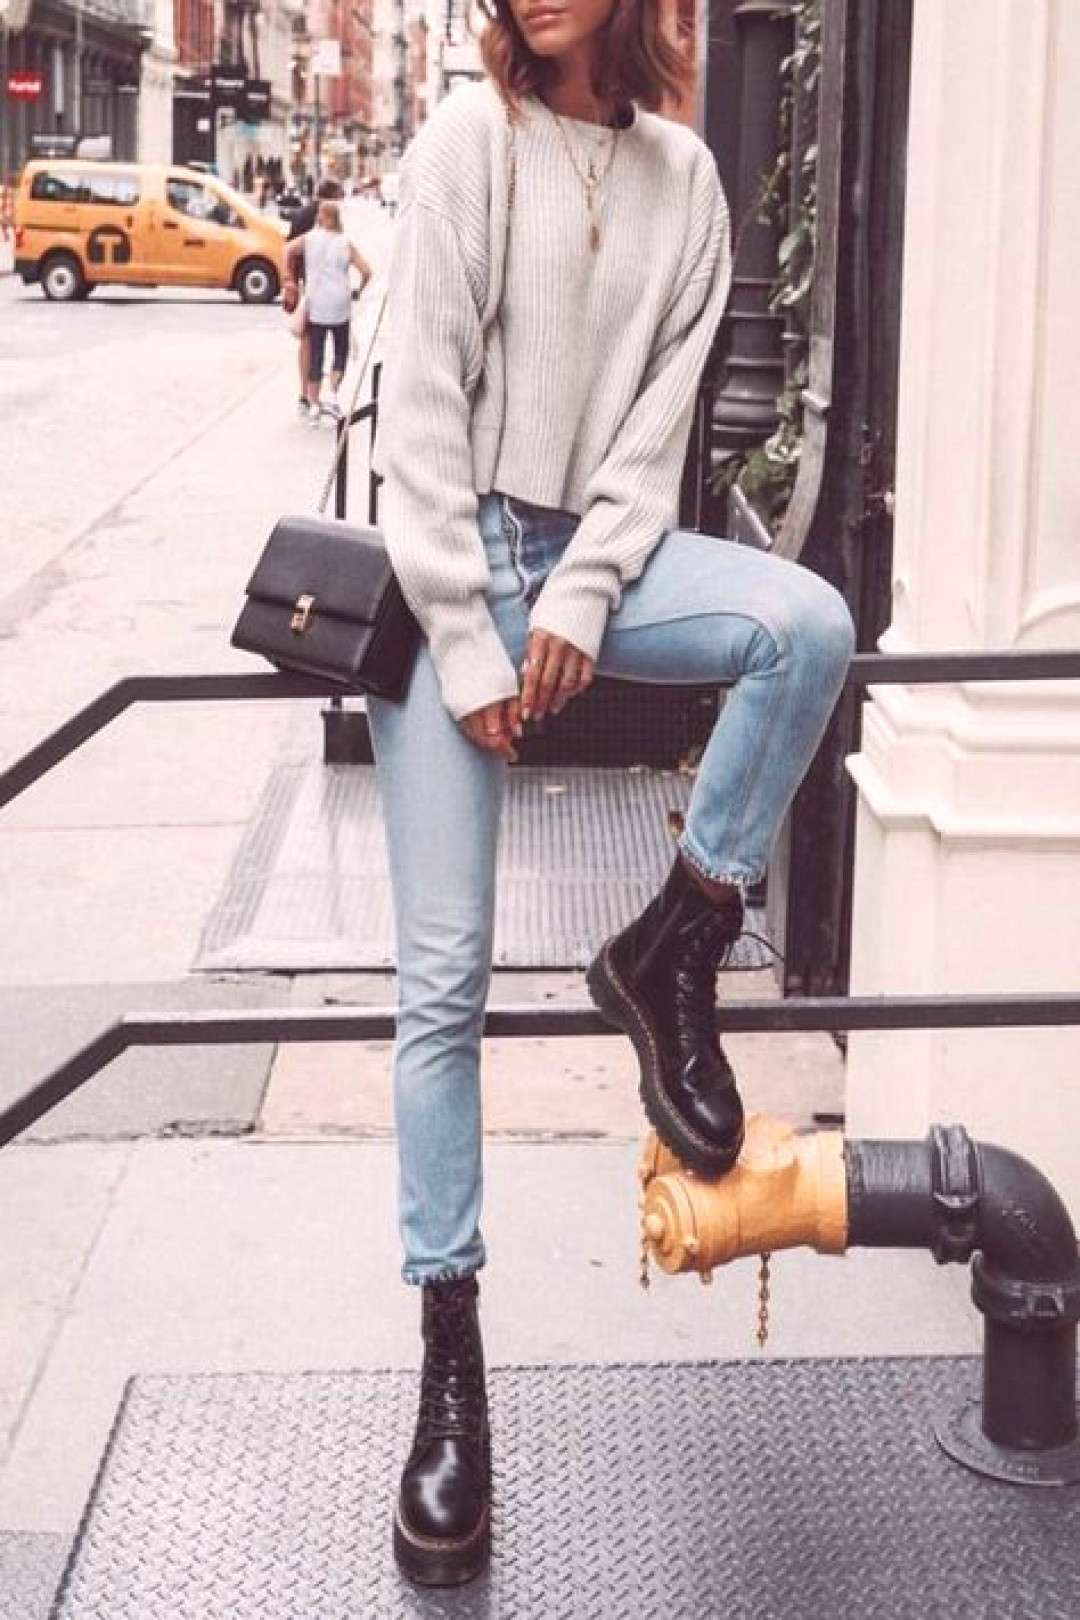 54+ Ideas boats outfit fall doc martens